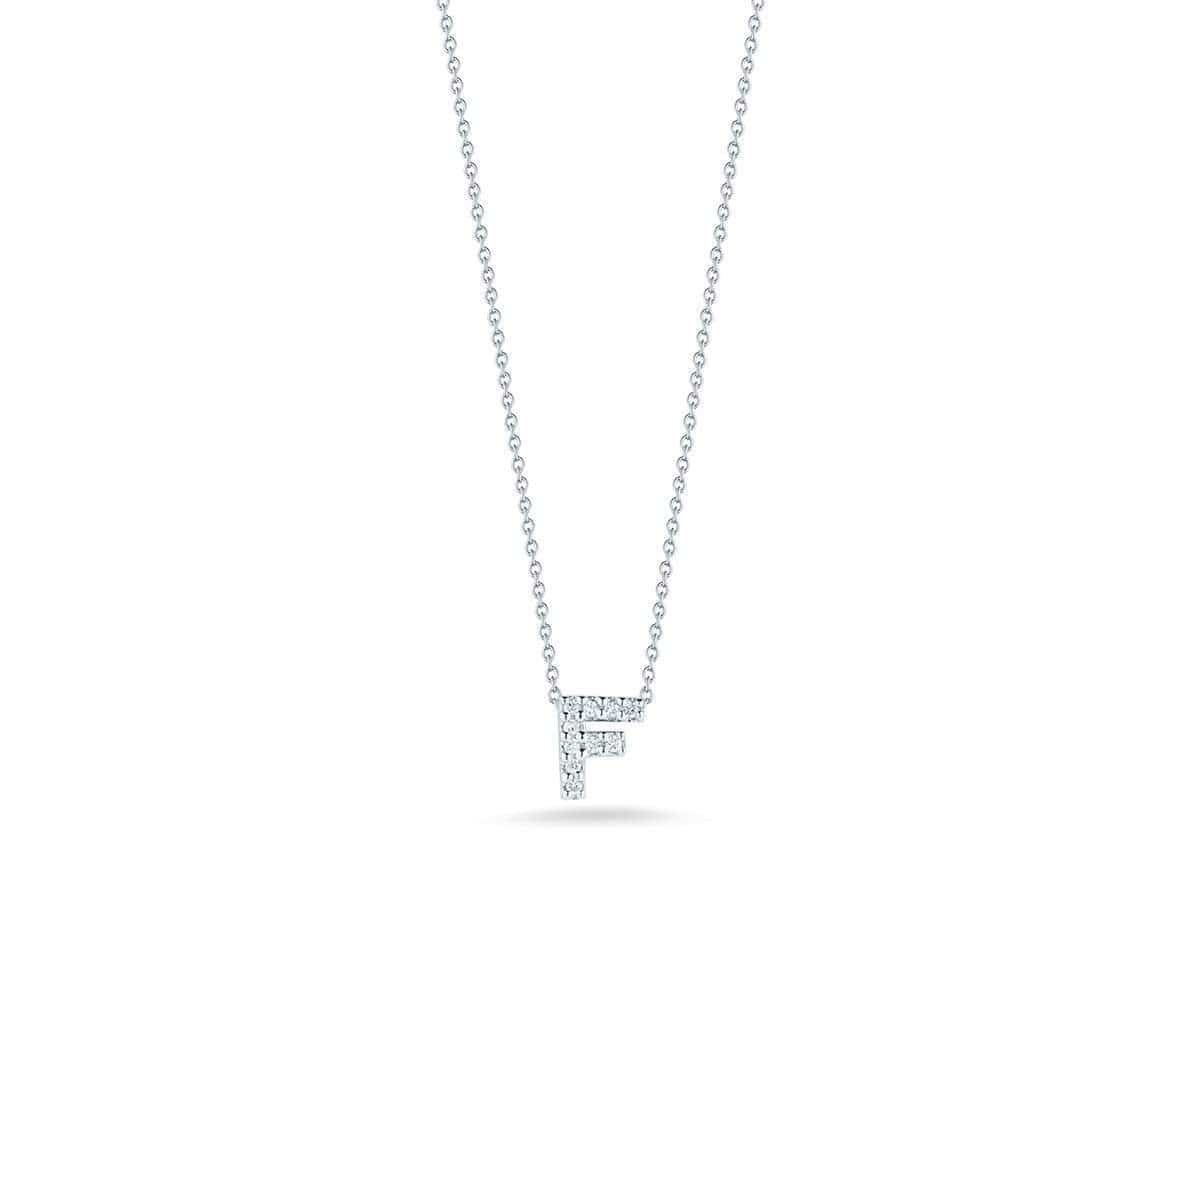 18k White Gold & Diamond Love Letter F Necklace - 001634AWCHXF